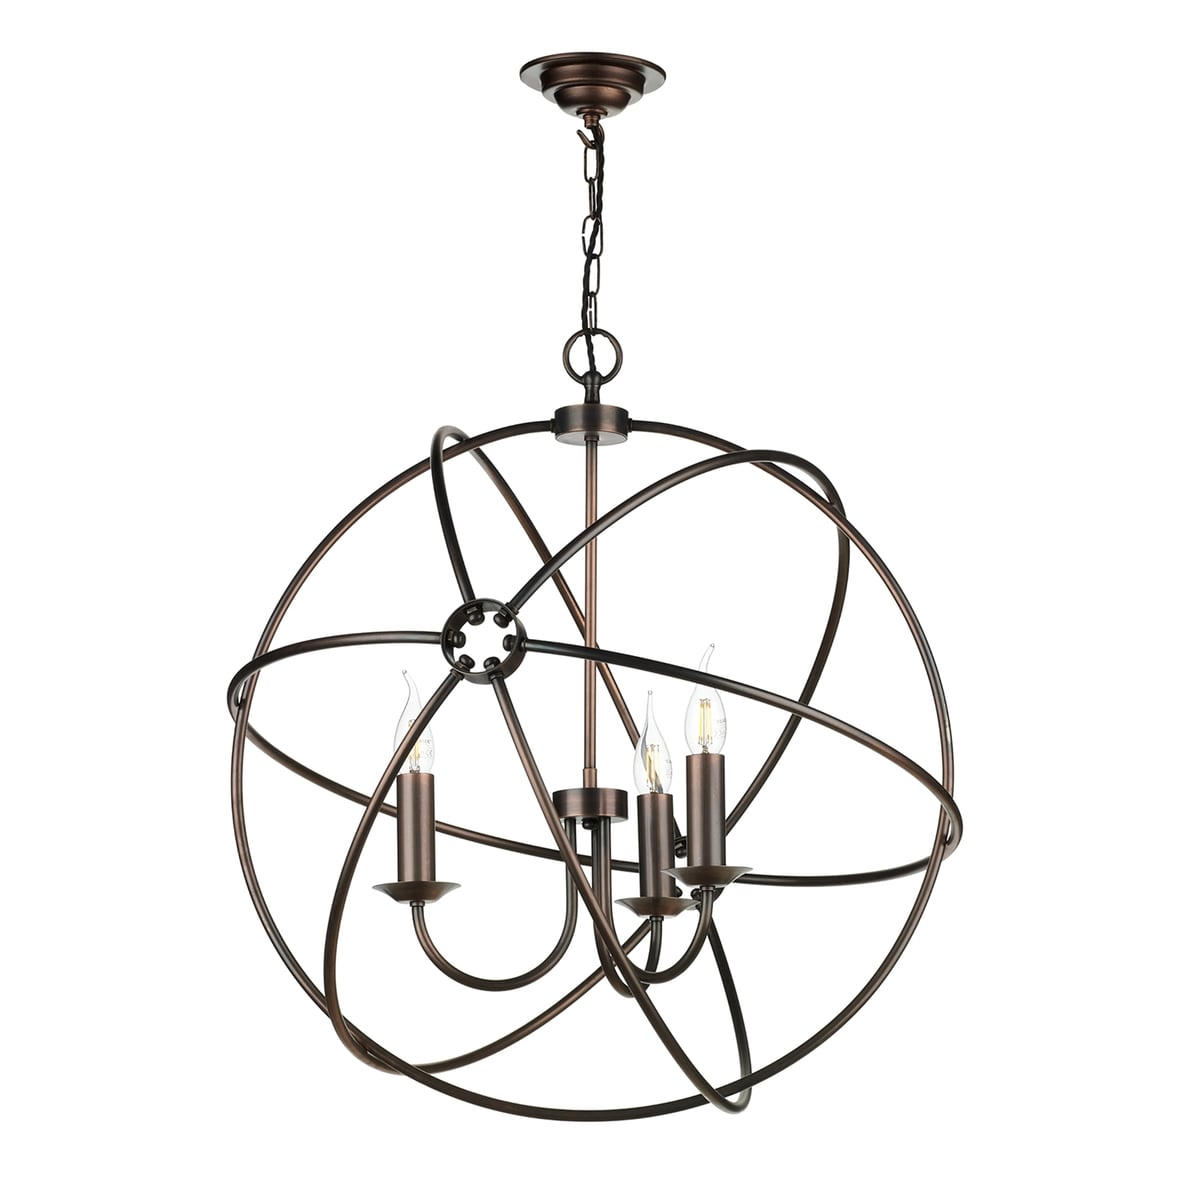 David Hunt Lighting ORB0564 Orb 5 Light Pendant in Antique Copper Finish